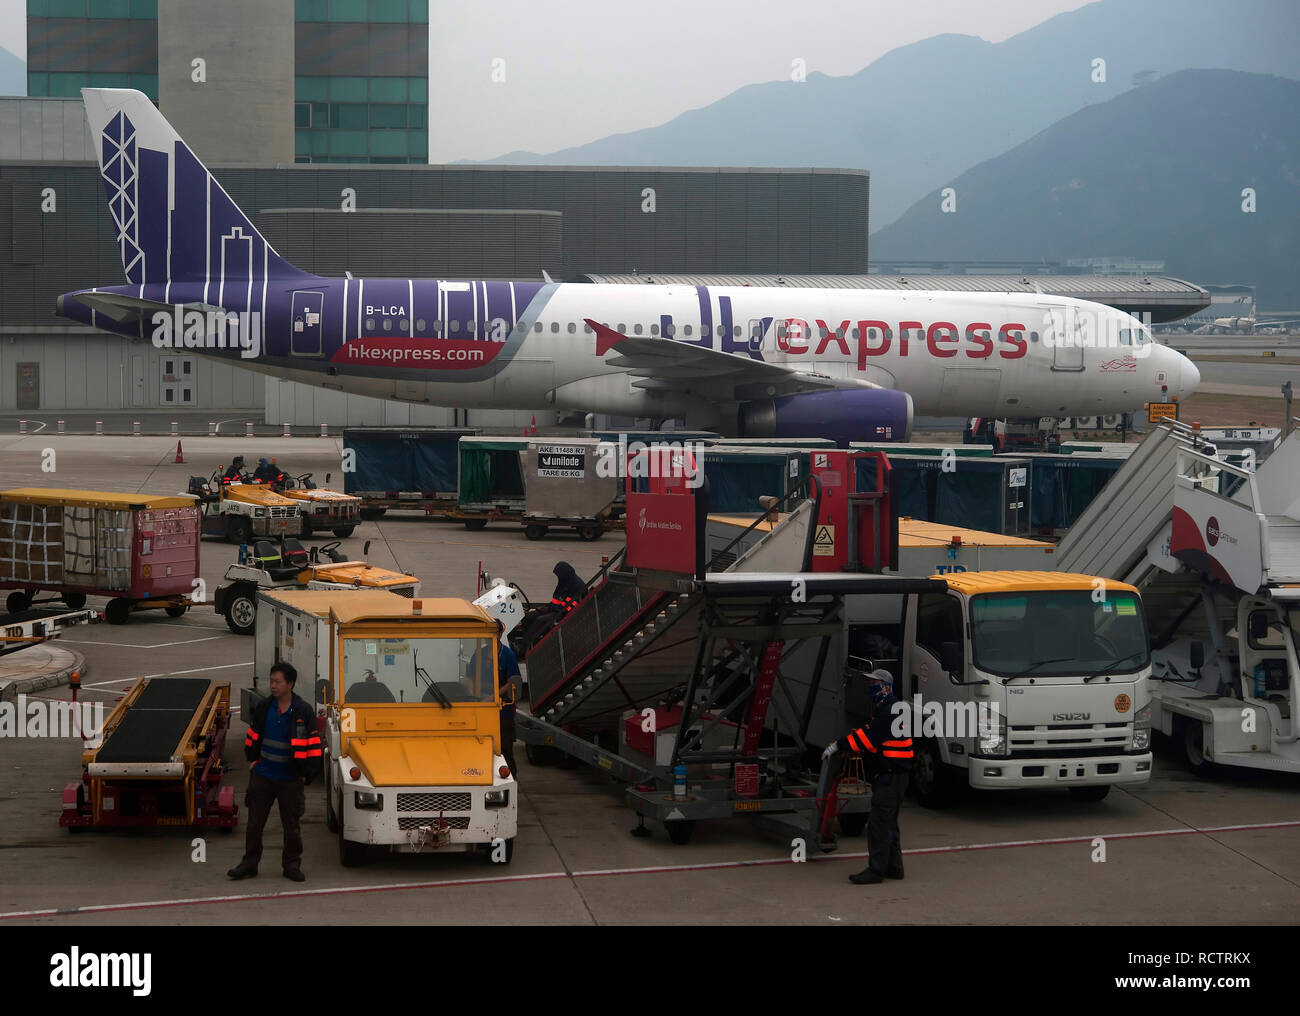 Hong Kong airport, China, South East Asia - Stock Image